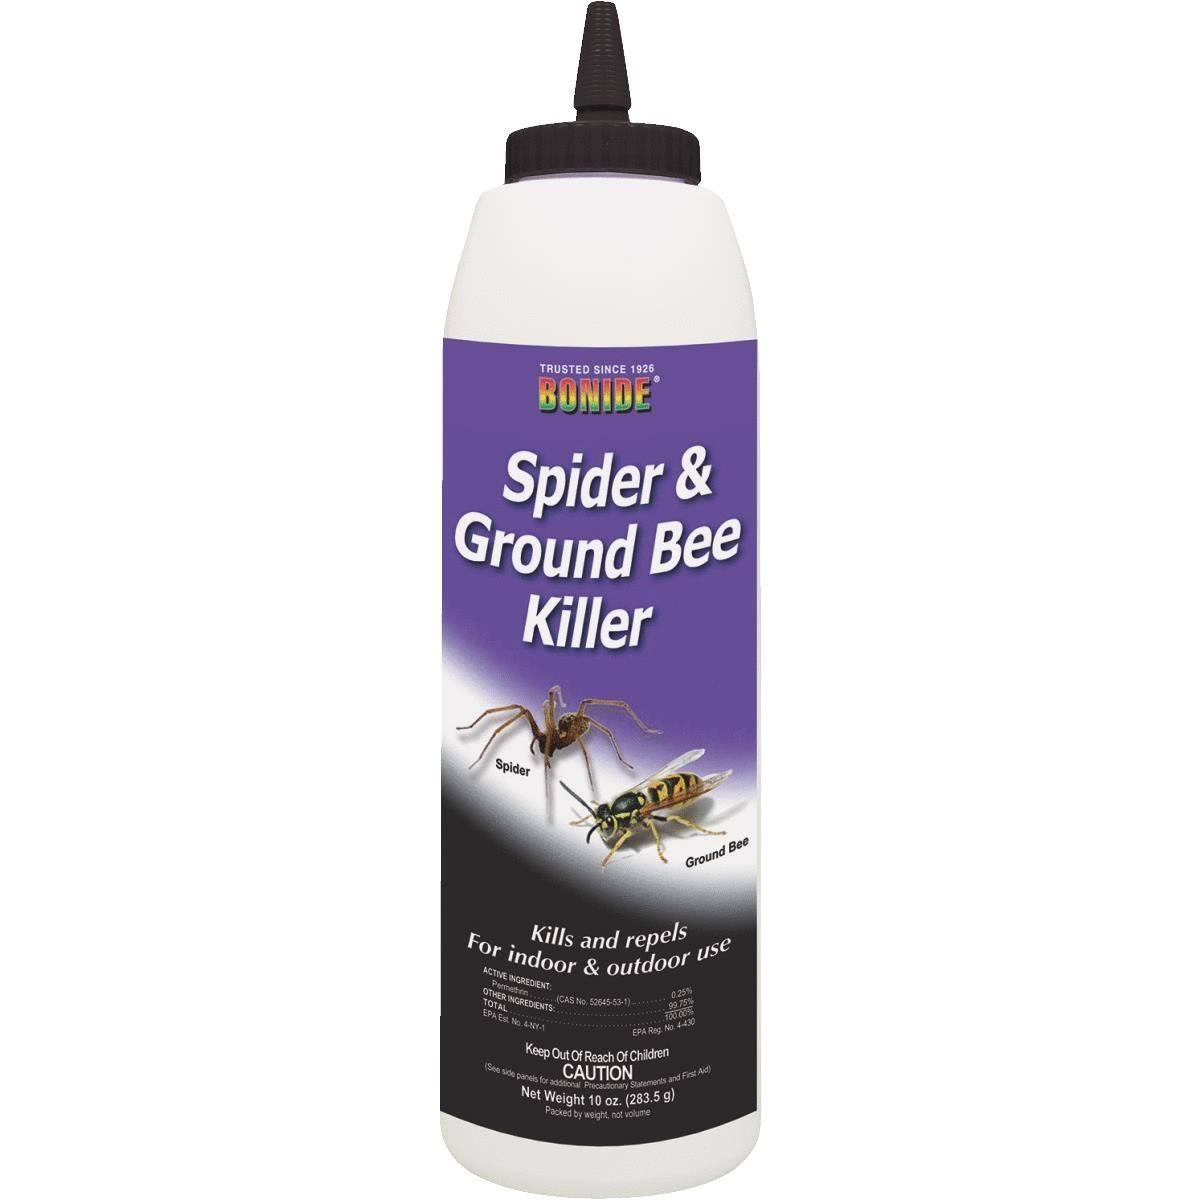 Bonide Spider and Ground Bee Killer Home Pest Repellent - 10oz